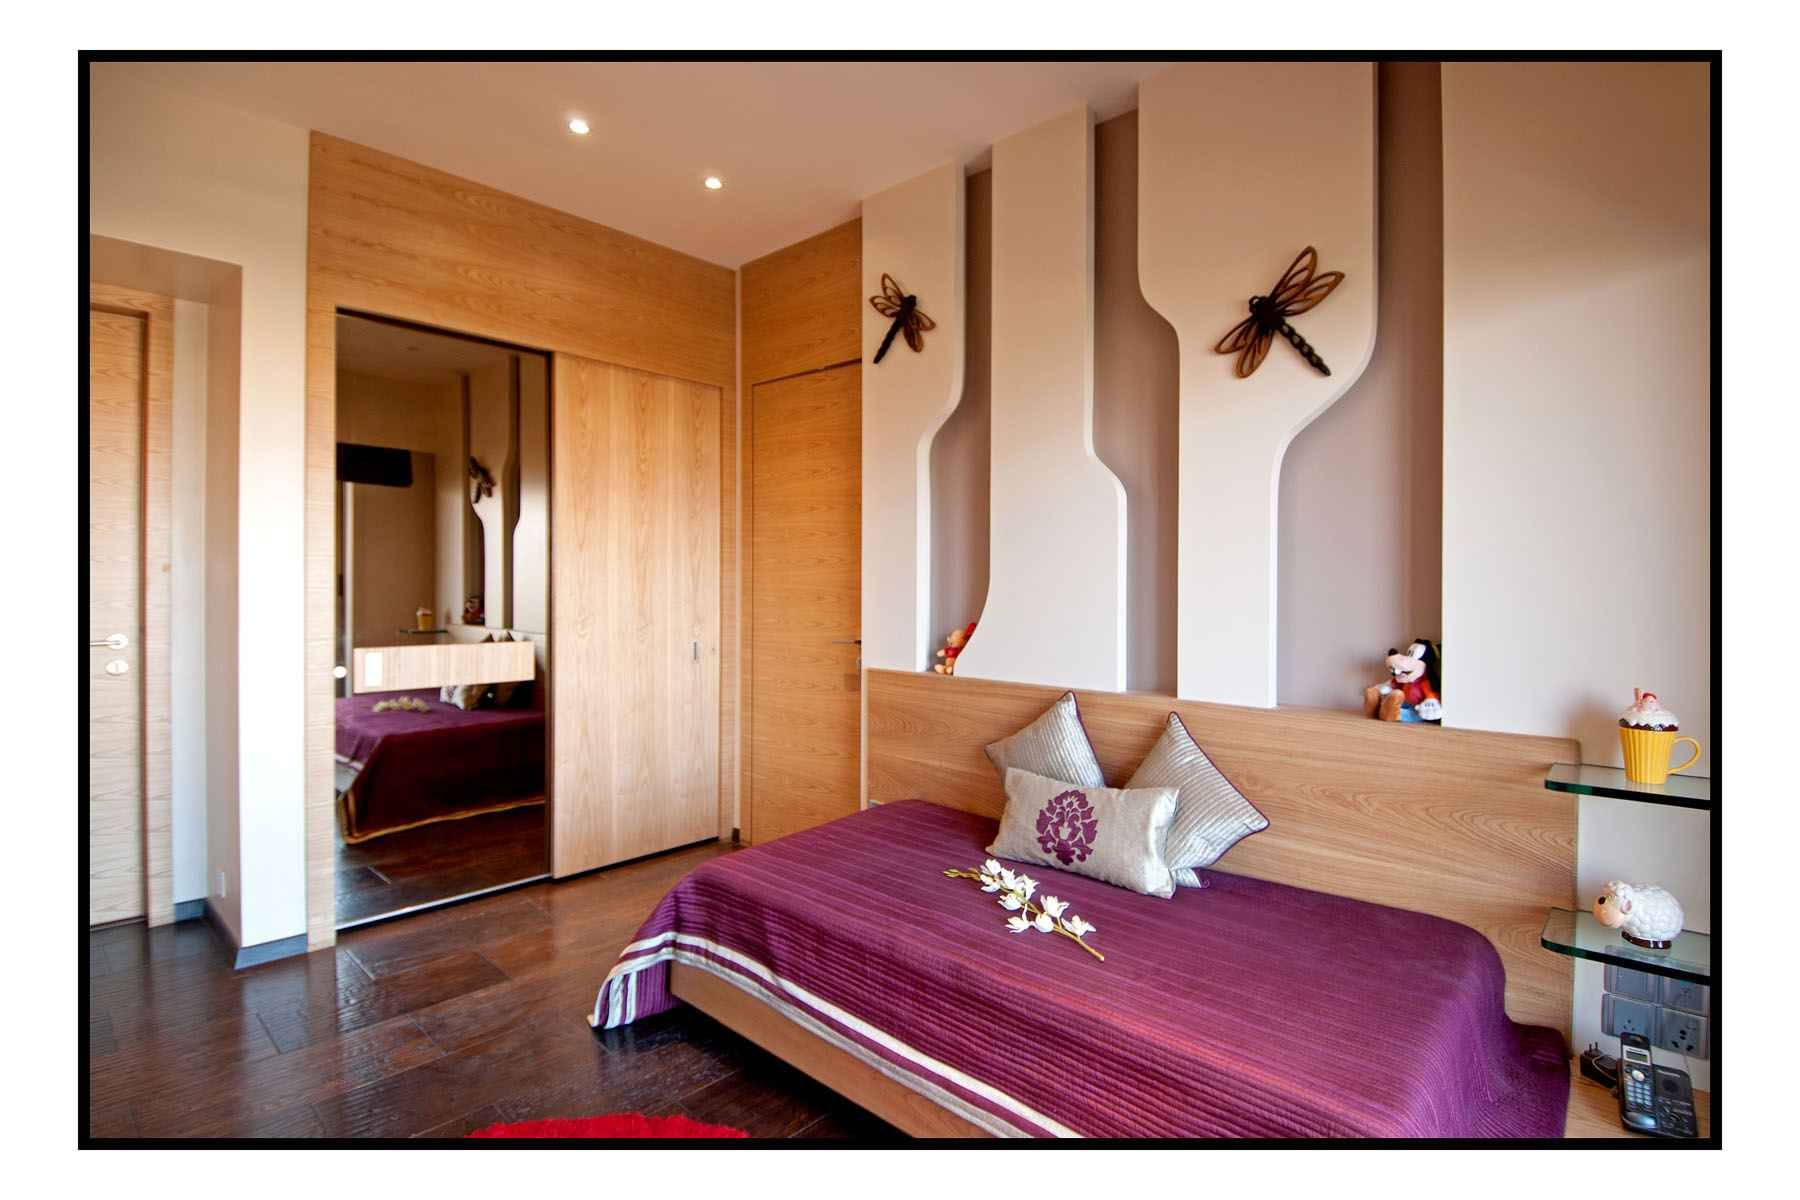 Luxury bedroom design by sameer panchal architect in for Sample bedroom designs